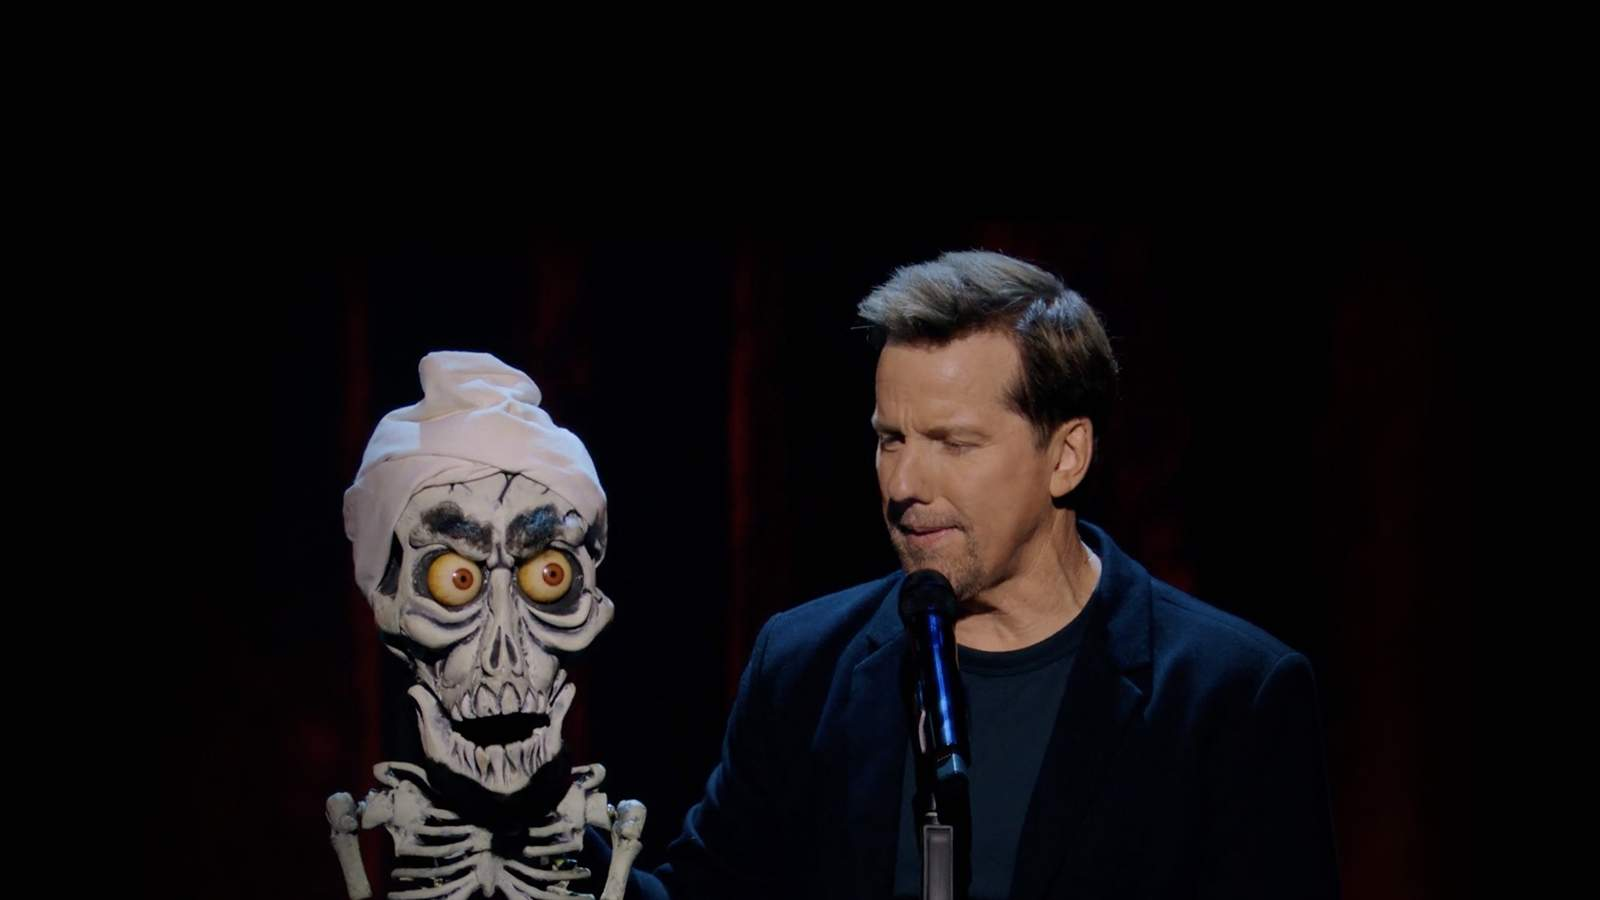 Jeff Dunham (21+ Event) (Rescheduled from 7/25/2020)